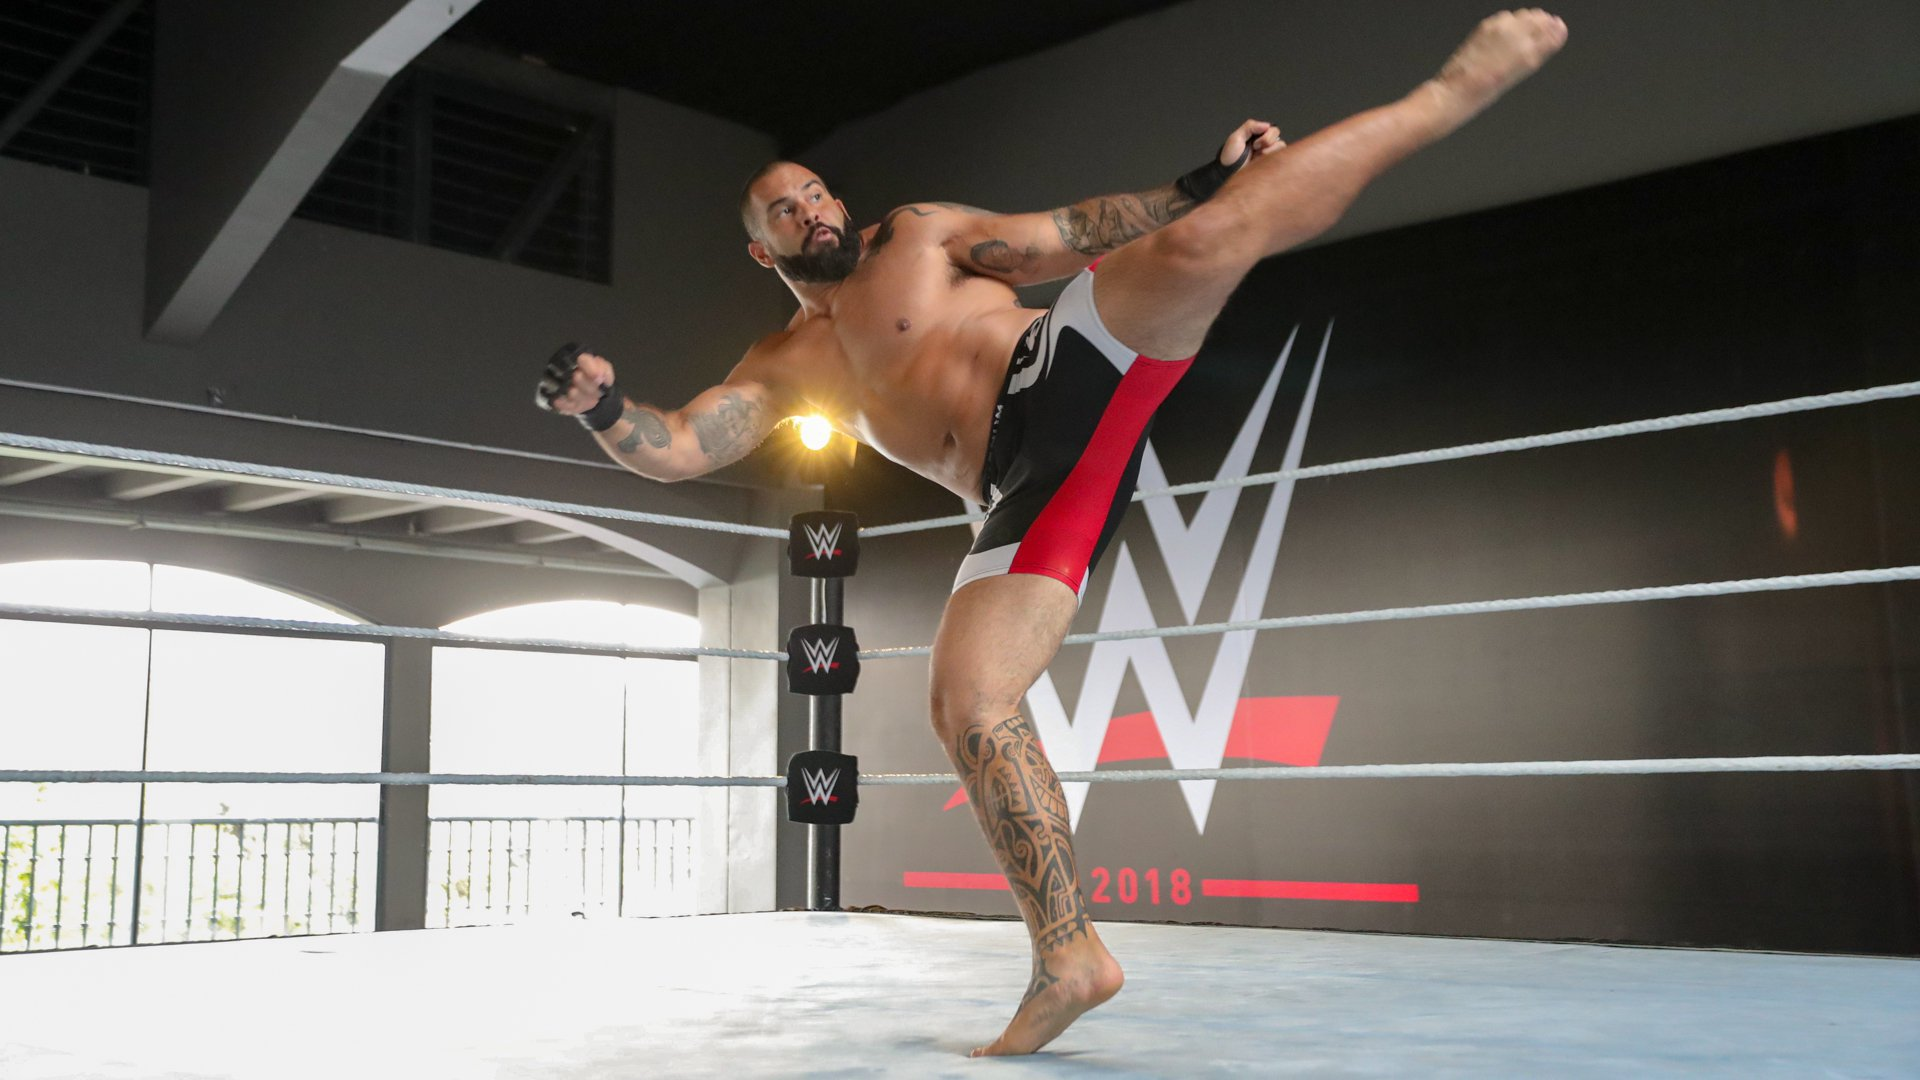 Brazilian MMA fighter Marcos Gomes shows his striking ability.